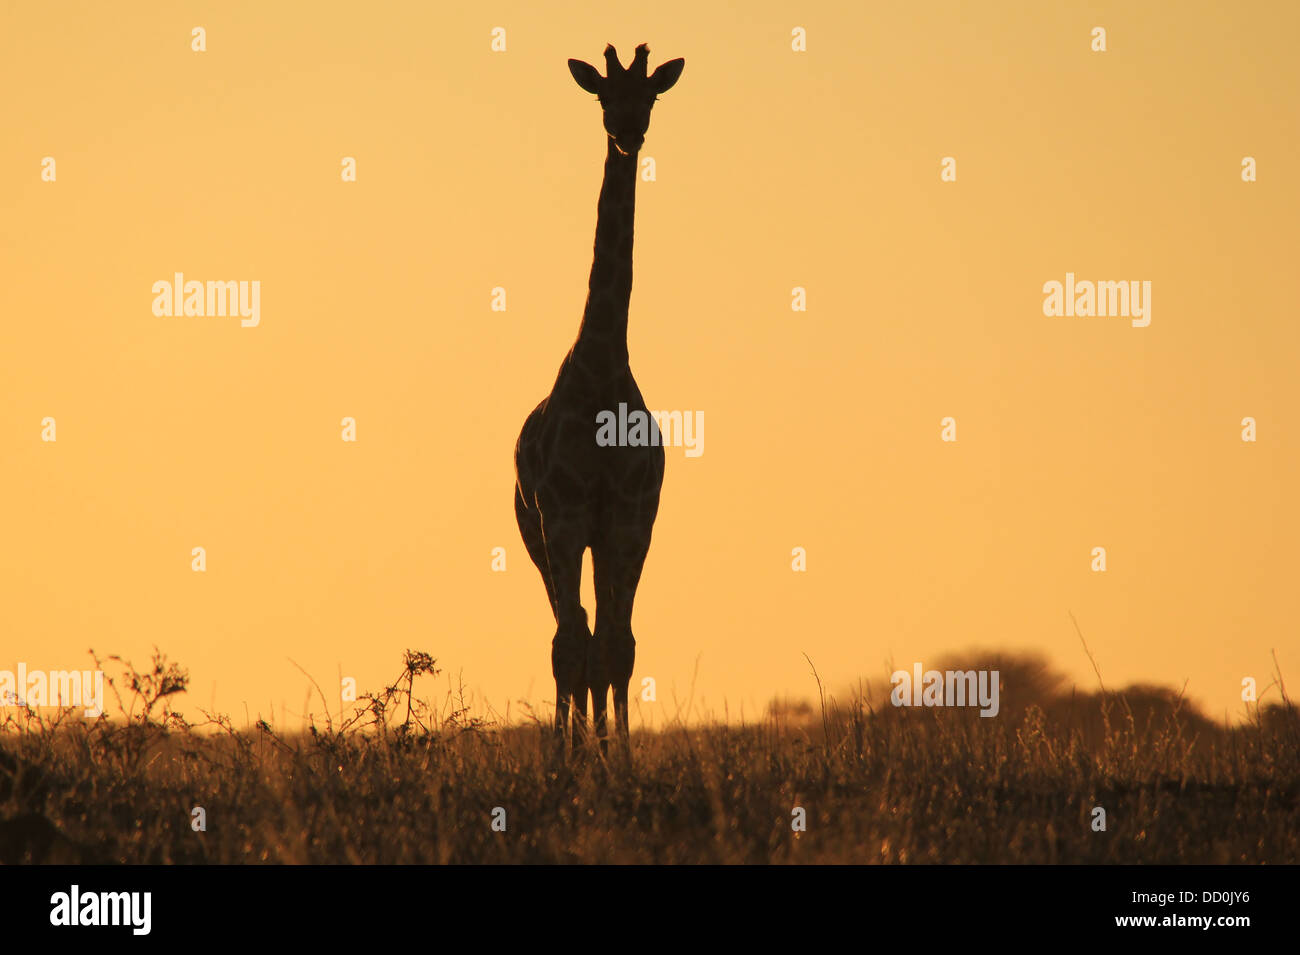 Giraffe Sunset Silhouette Background of Color and Beauty from Wild Africa - Stock Image